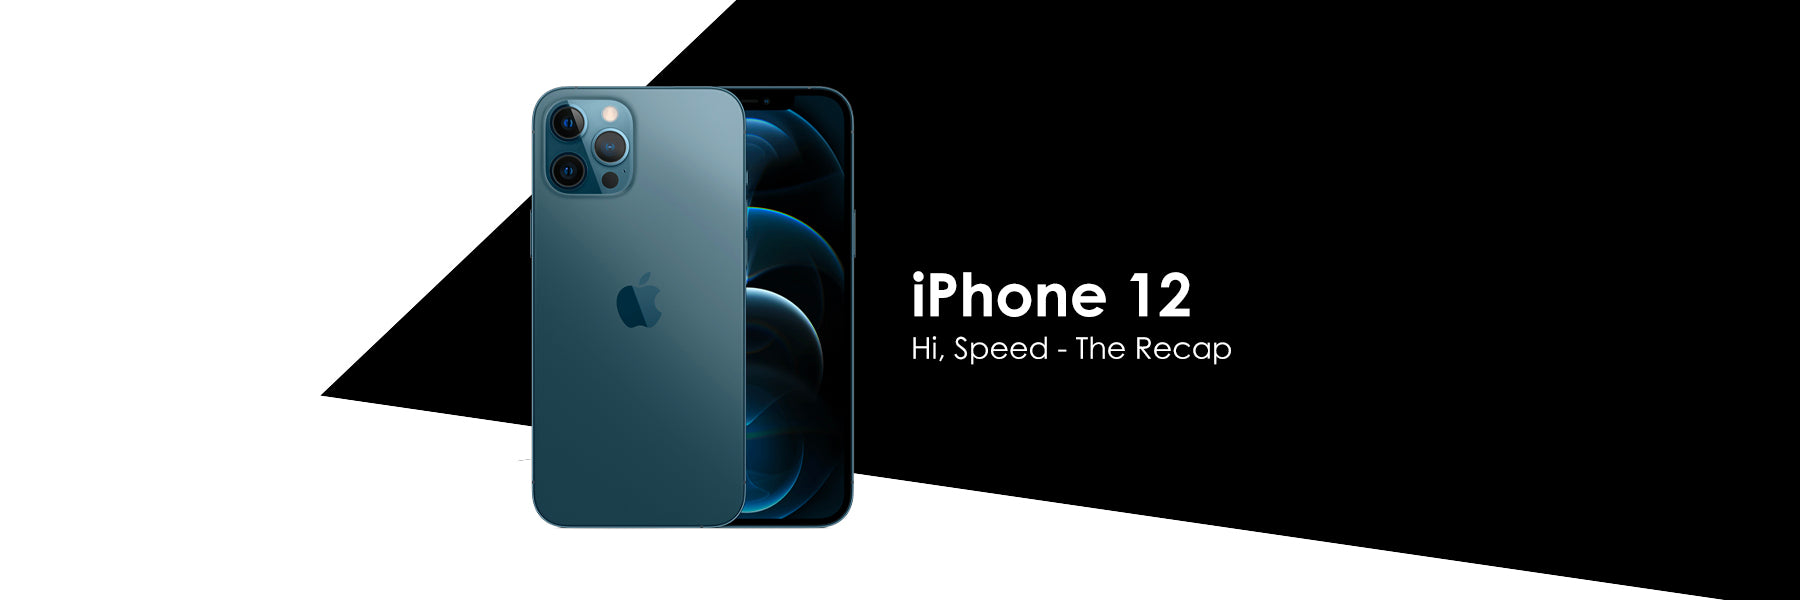 apple event 2020 october iPhone 12 hi speed